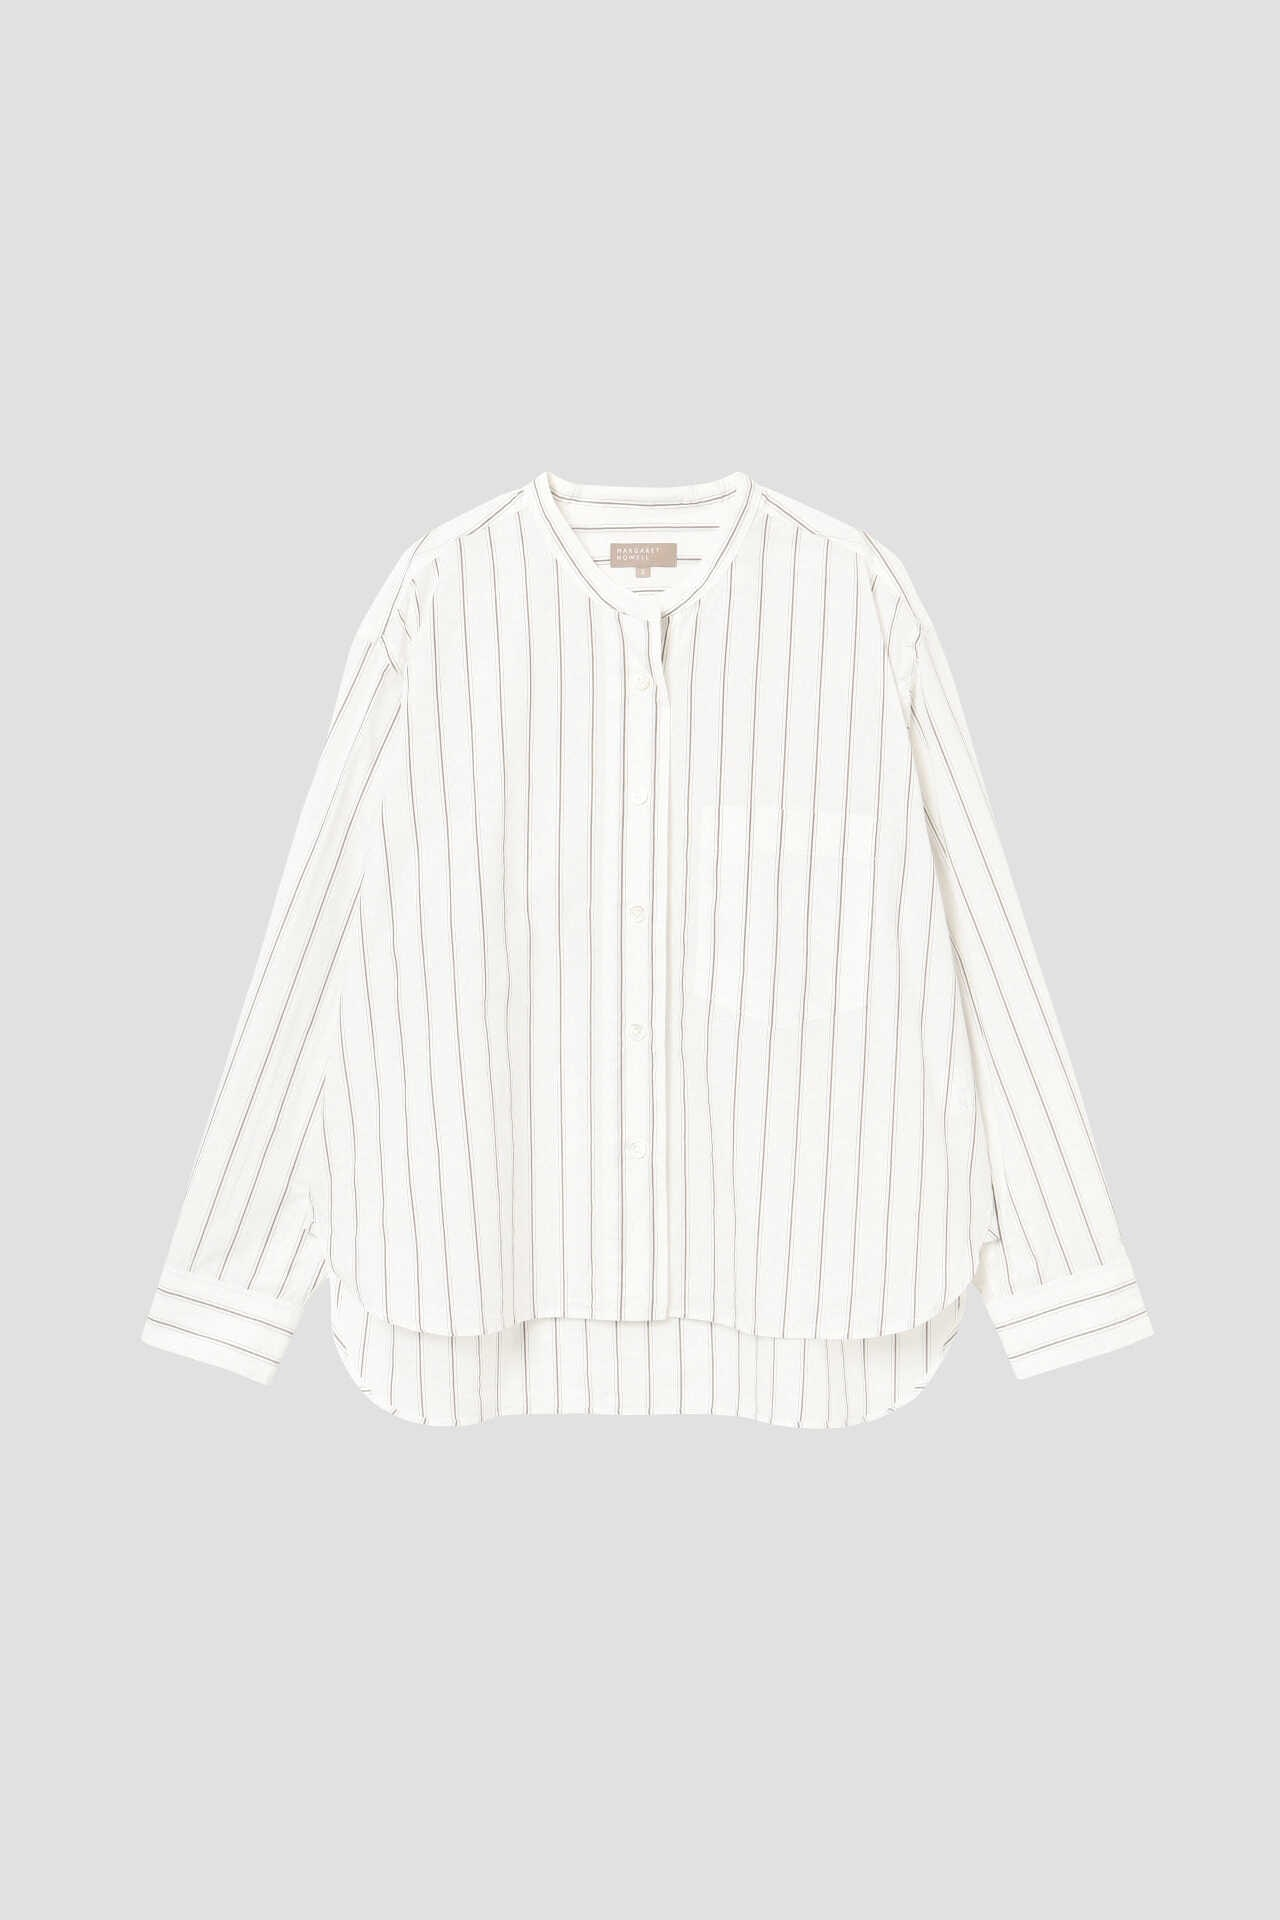 SUPERFINE COTTON STRIPE6